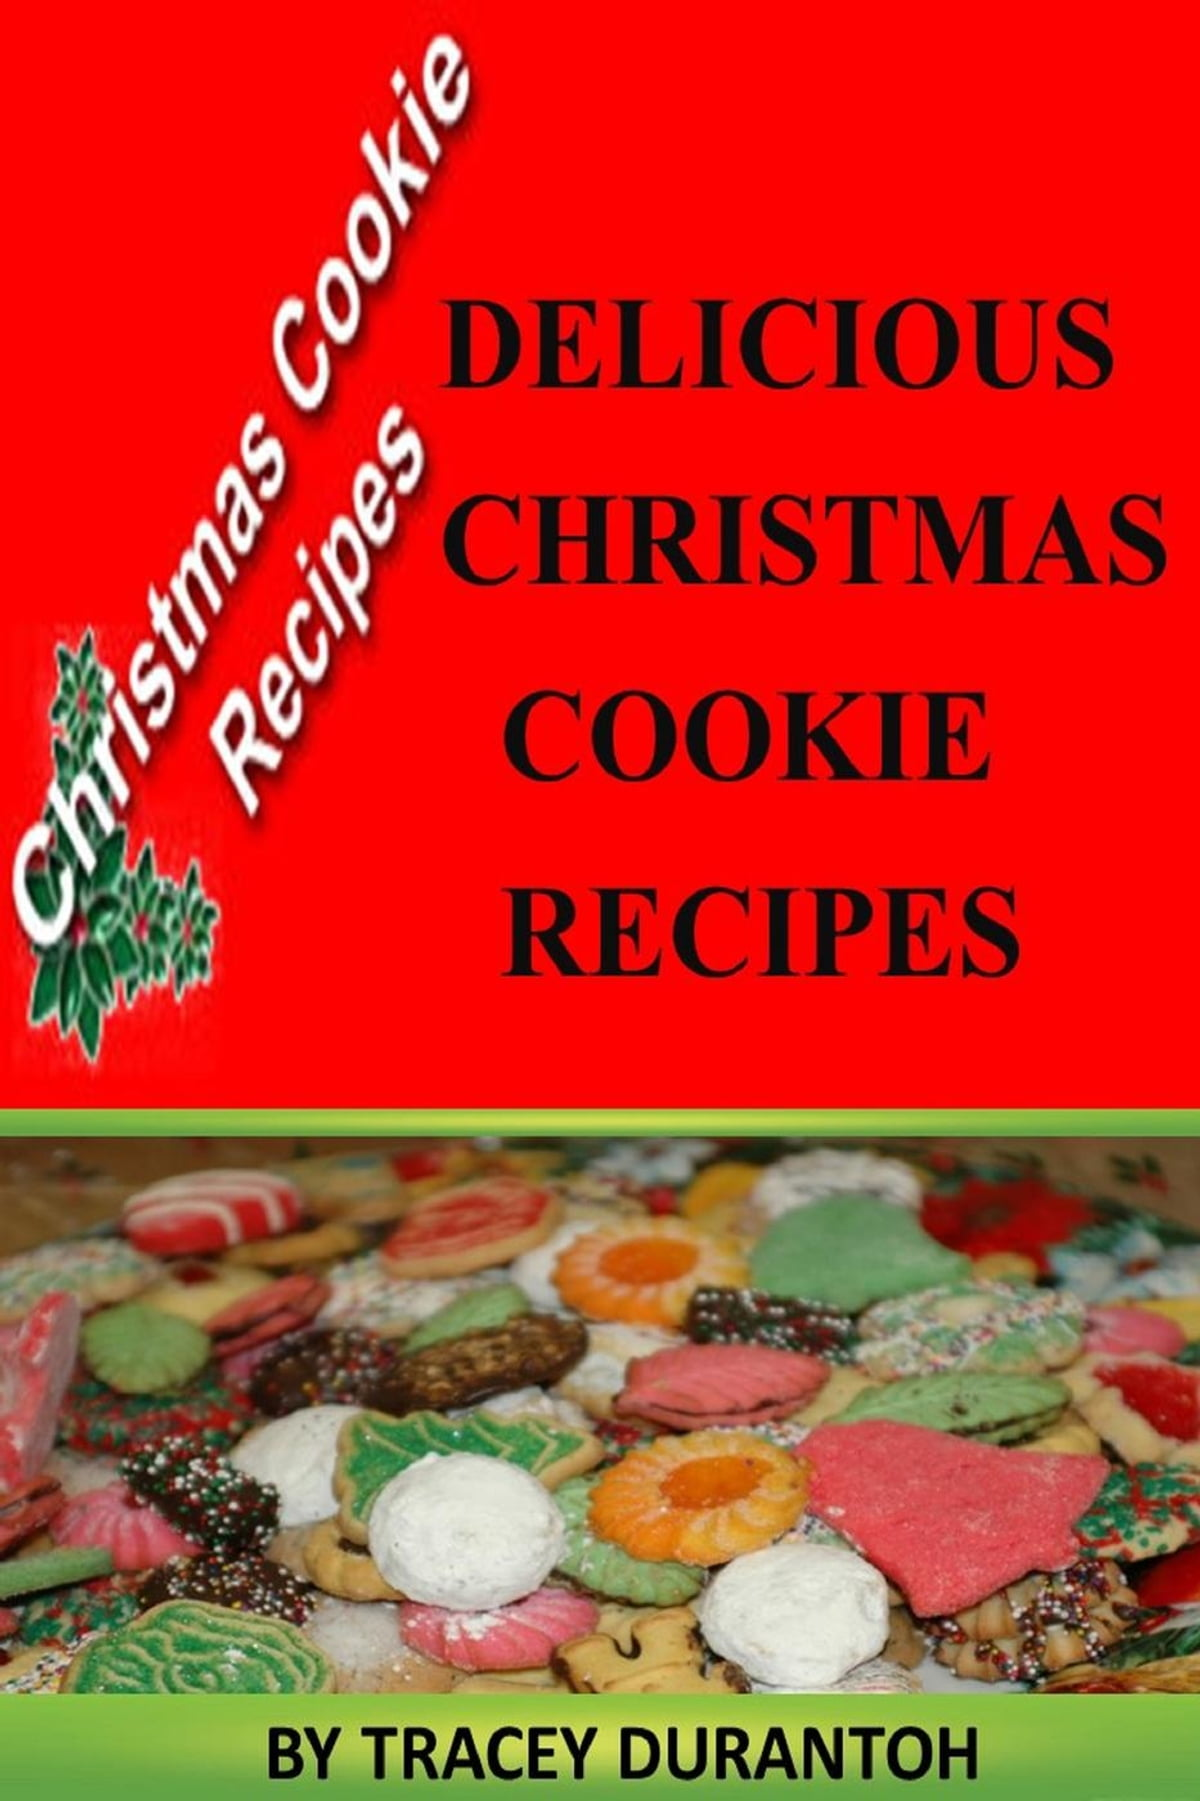 Christmas Cookies Recipes Delicious Holiday Sweet Treats Ebook By Tracey Durantoh Rakuten Kobo